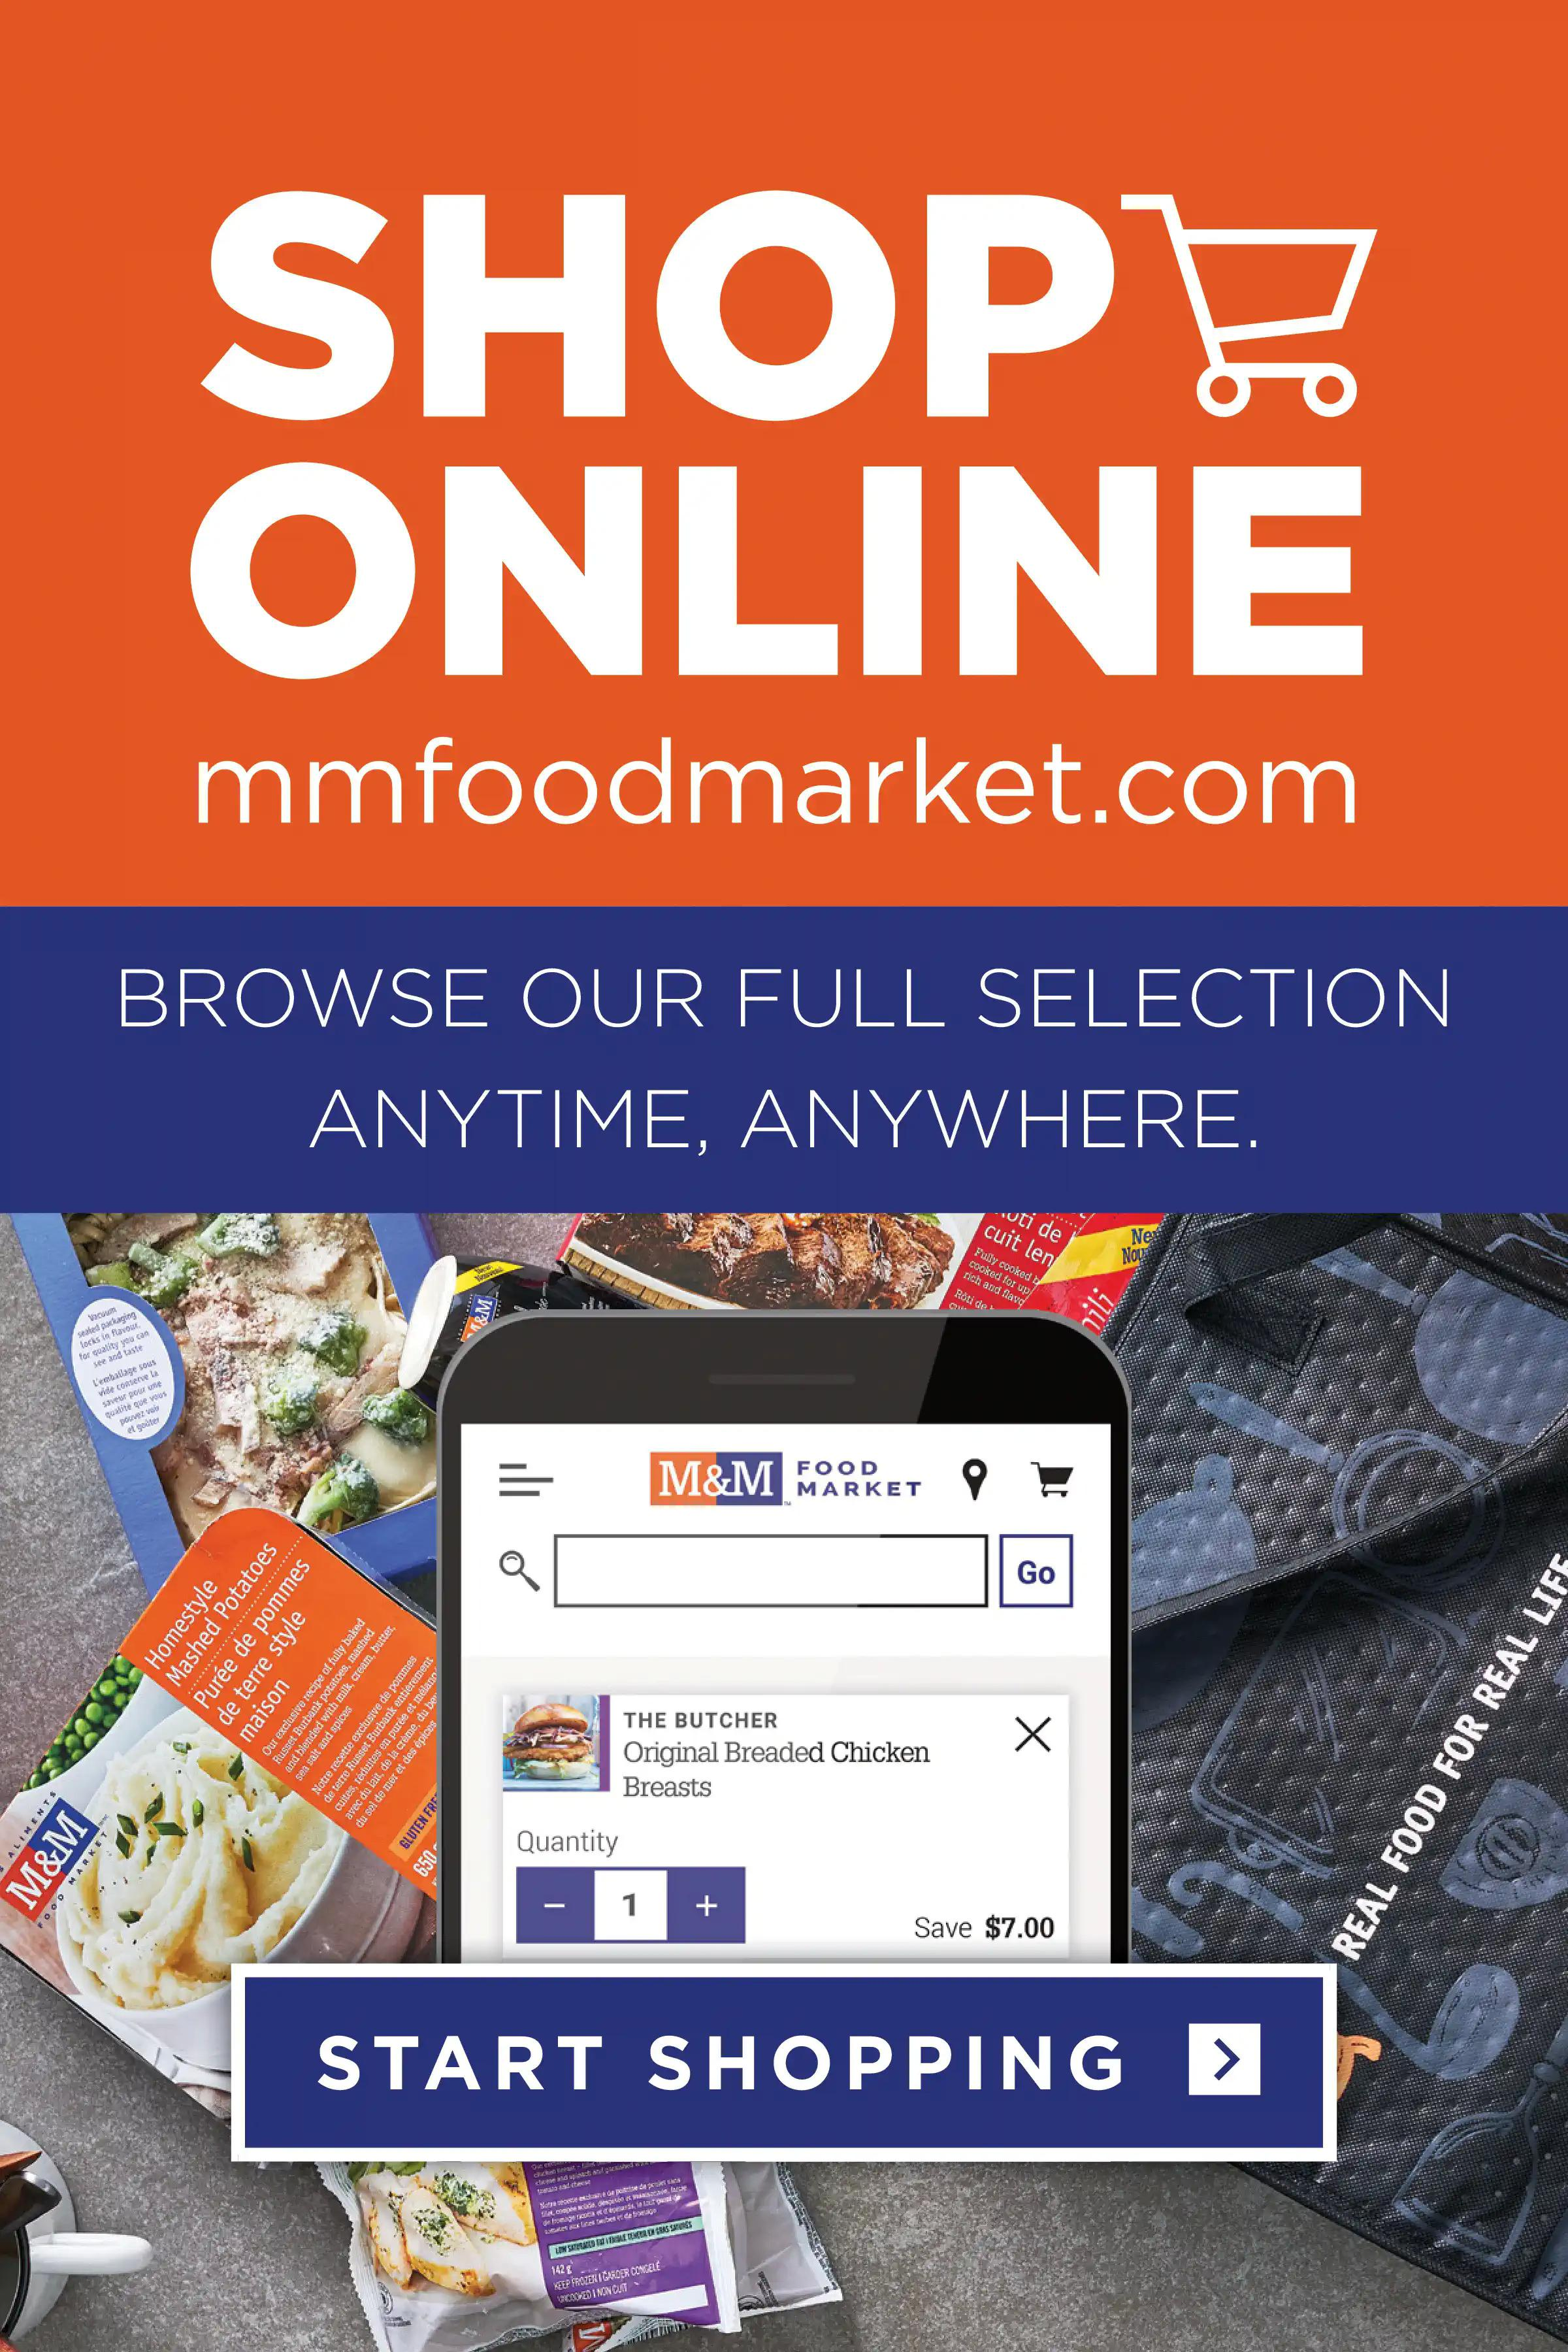 M&M Food Market - Weekly Flyer Specials - Page 11